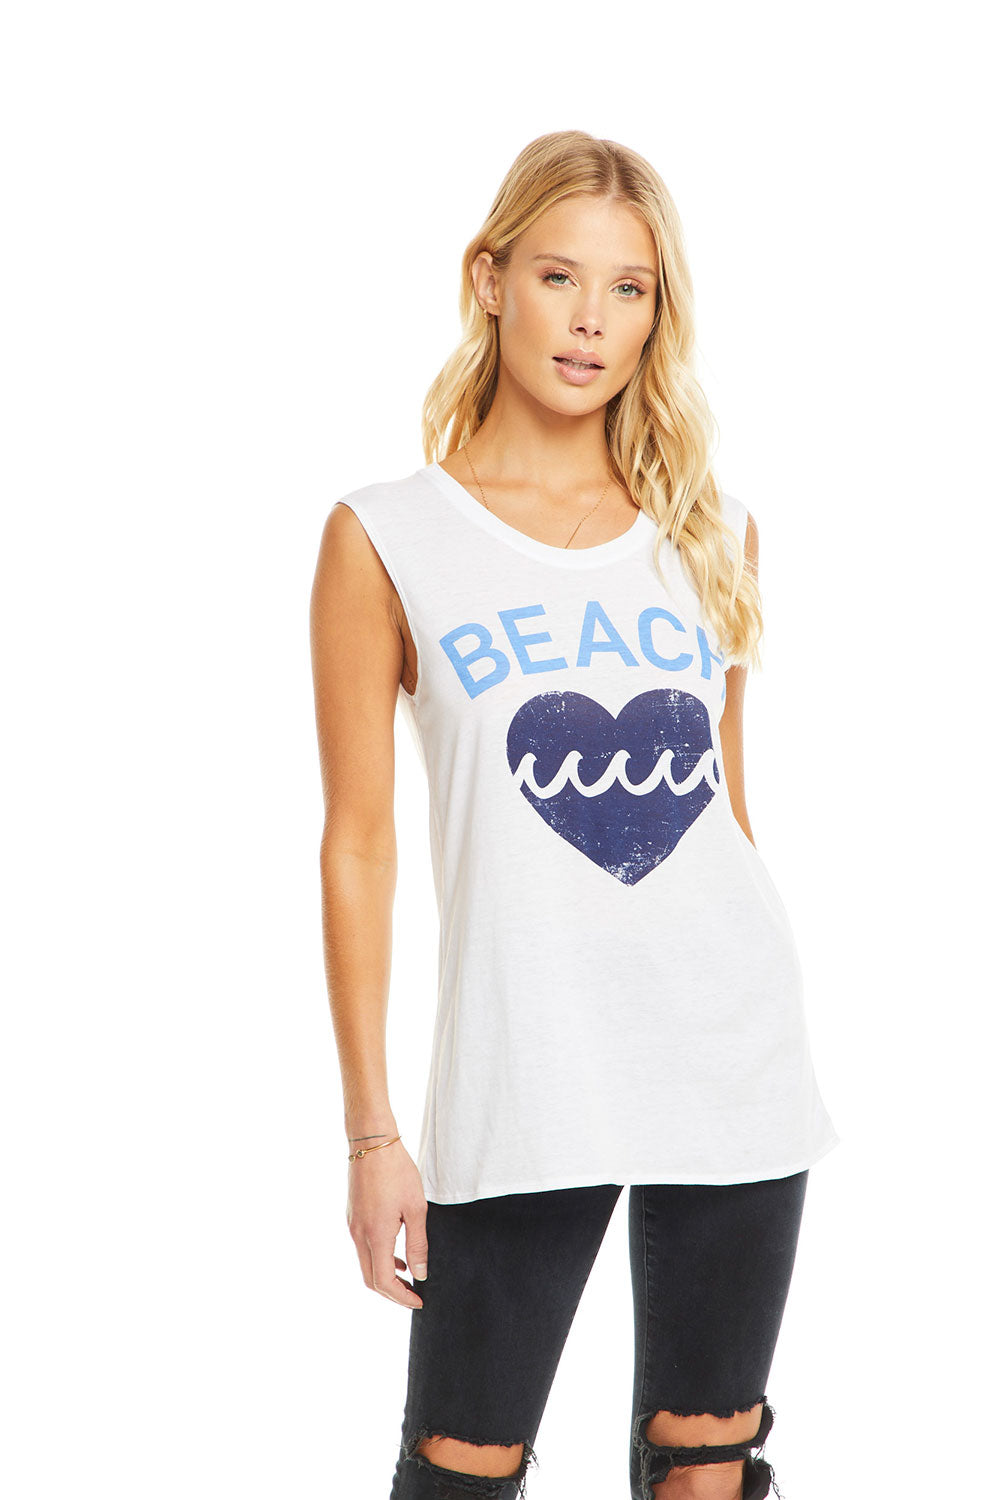 Beach Love WOMENS chaserbrand4.myshopify.com